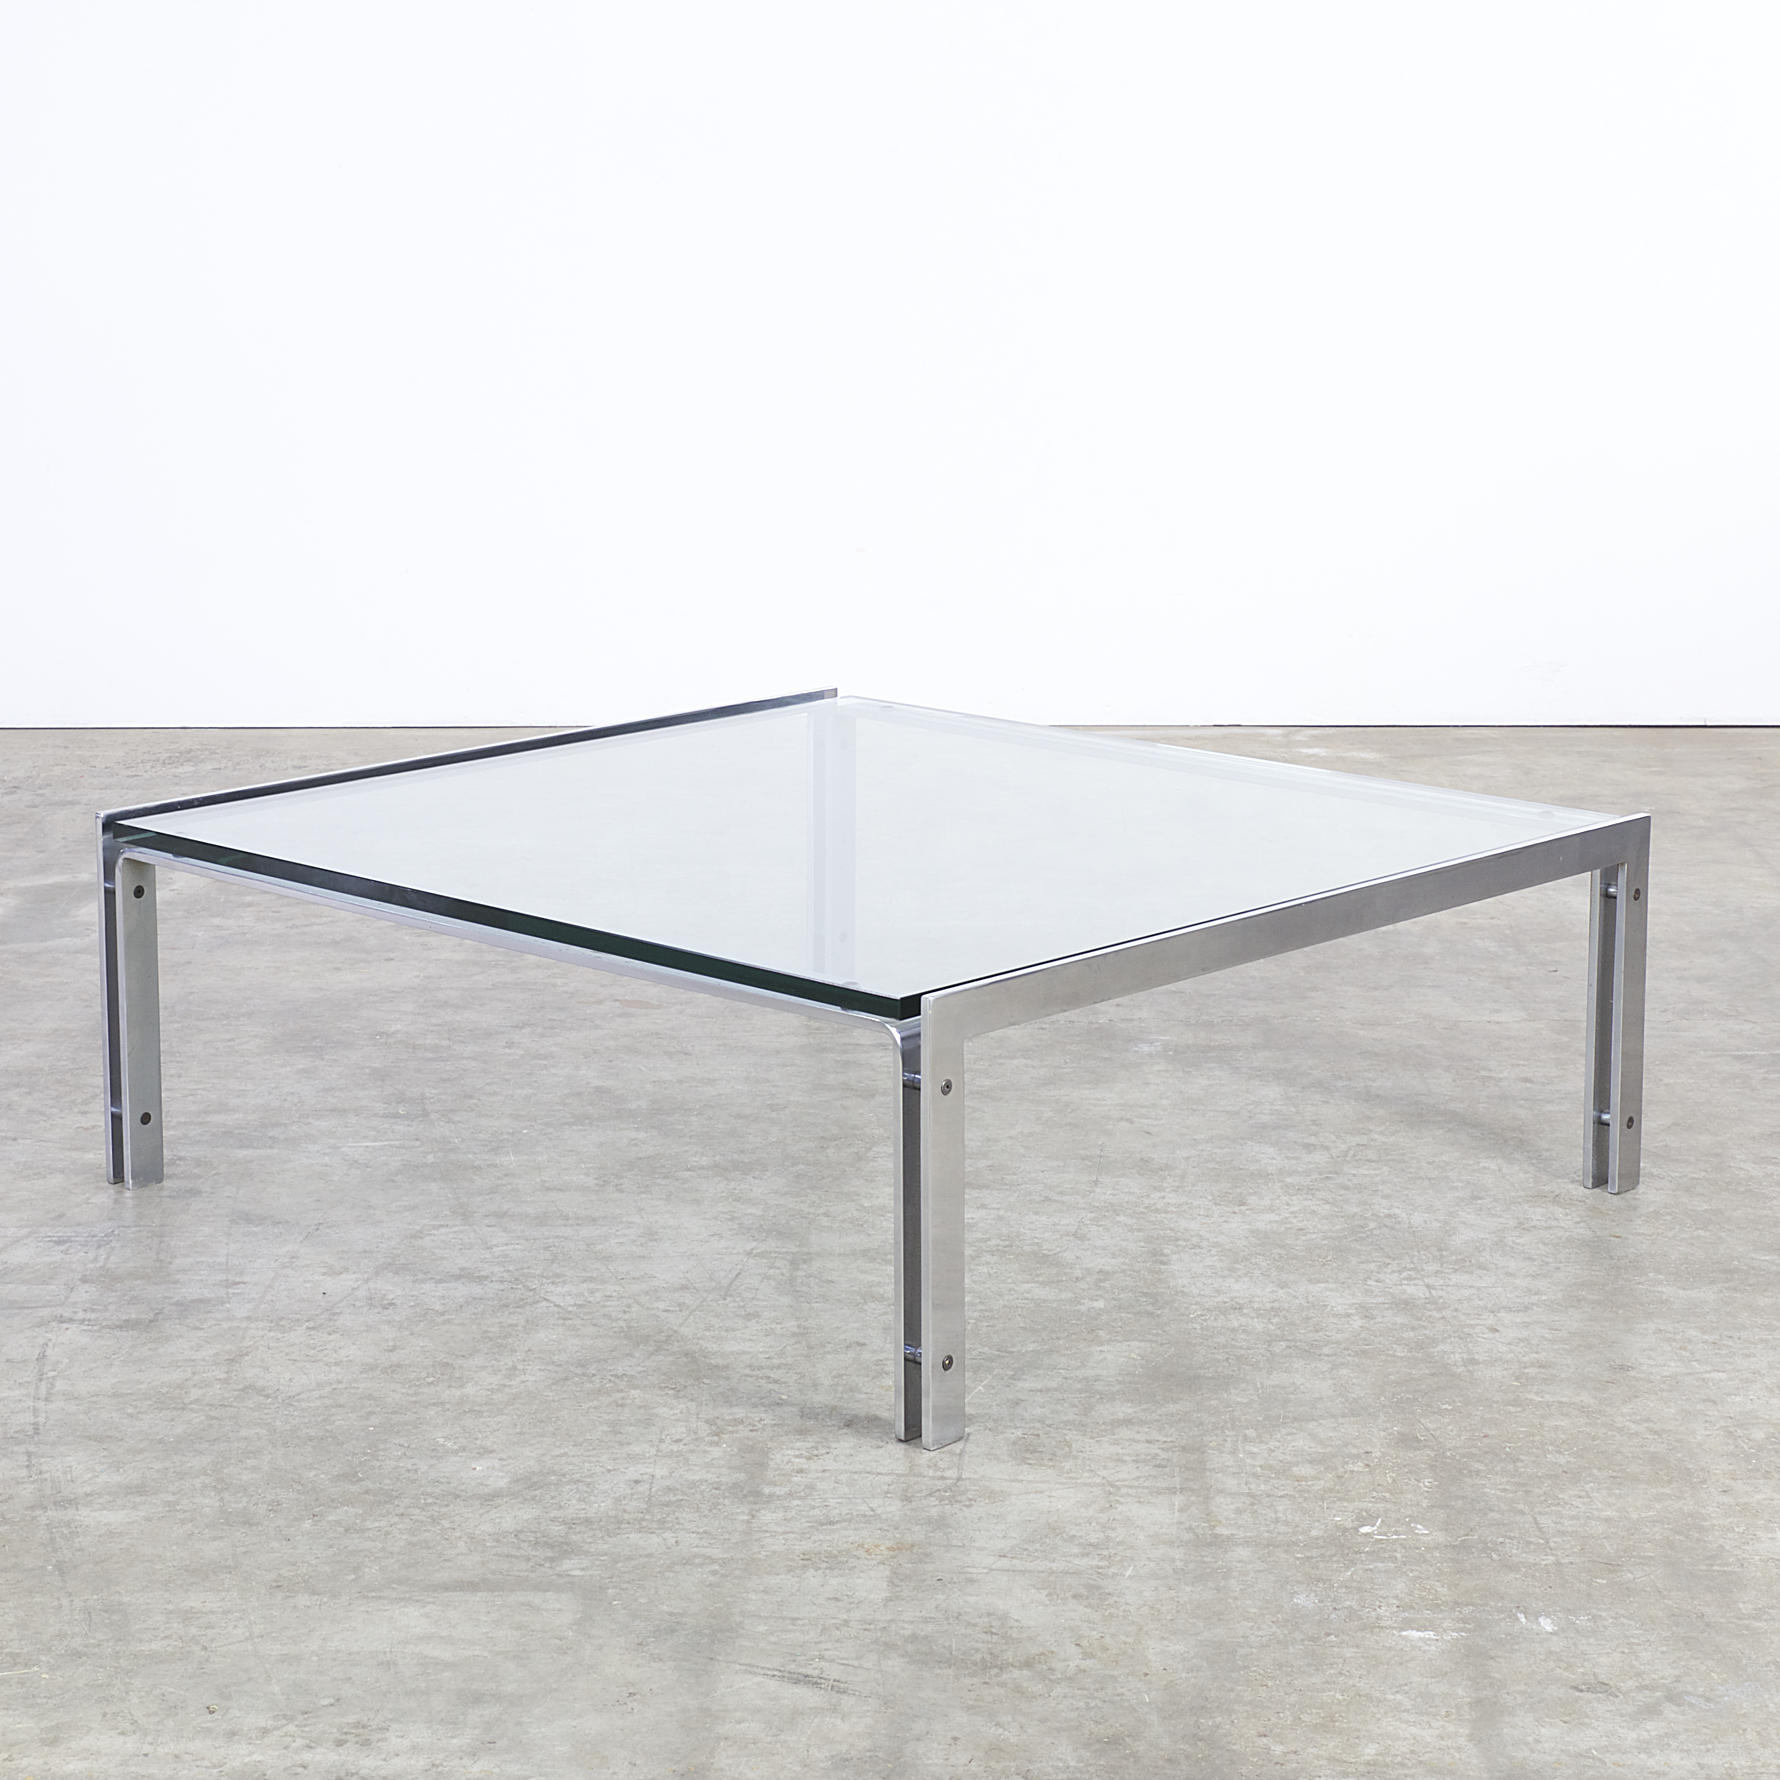 70s glass and chrome M1 coffee table for Metaform